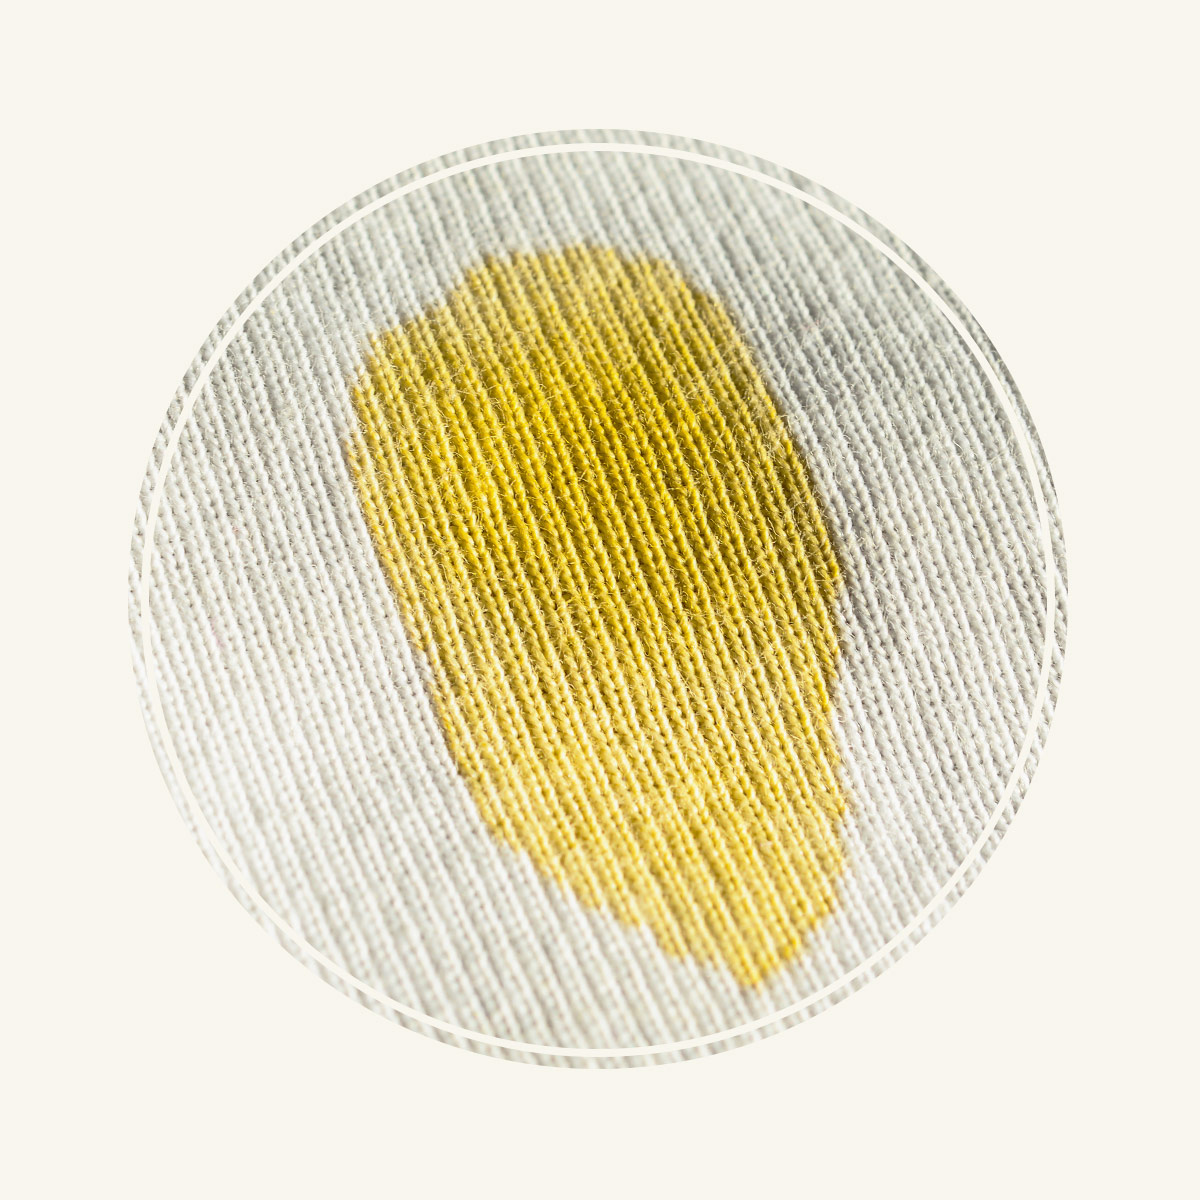 Yellow stain on garment.